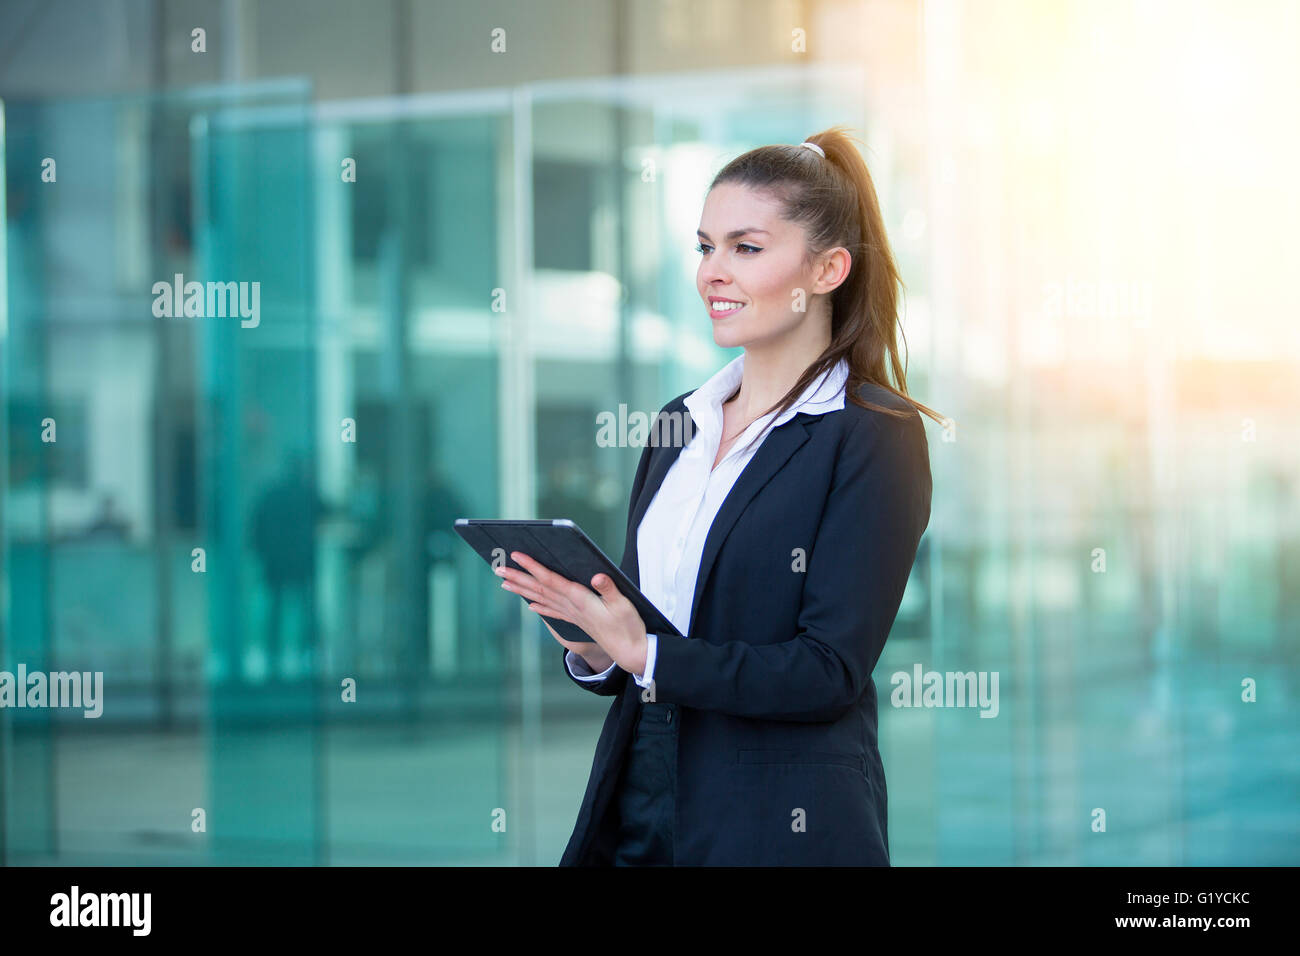 Businesswoman using a digital tablet - Stock Image